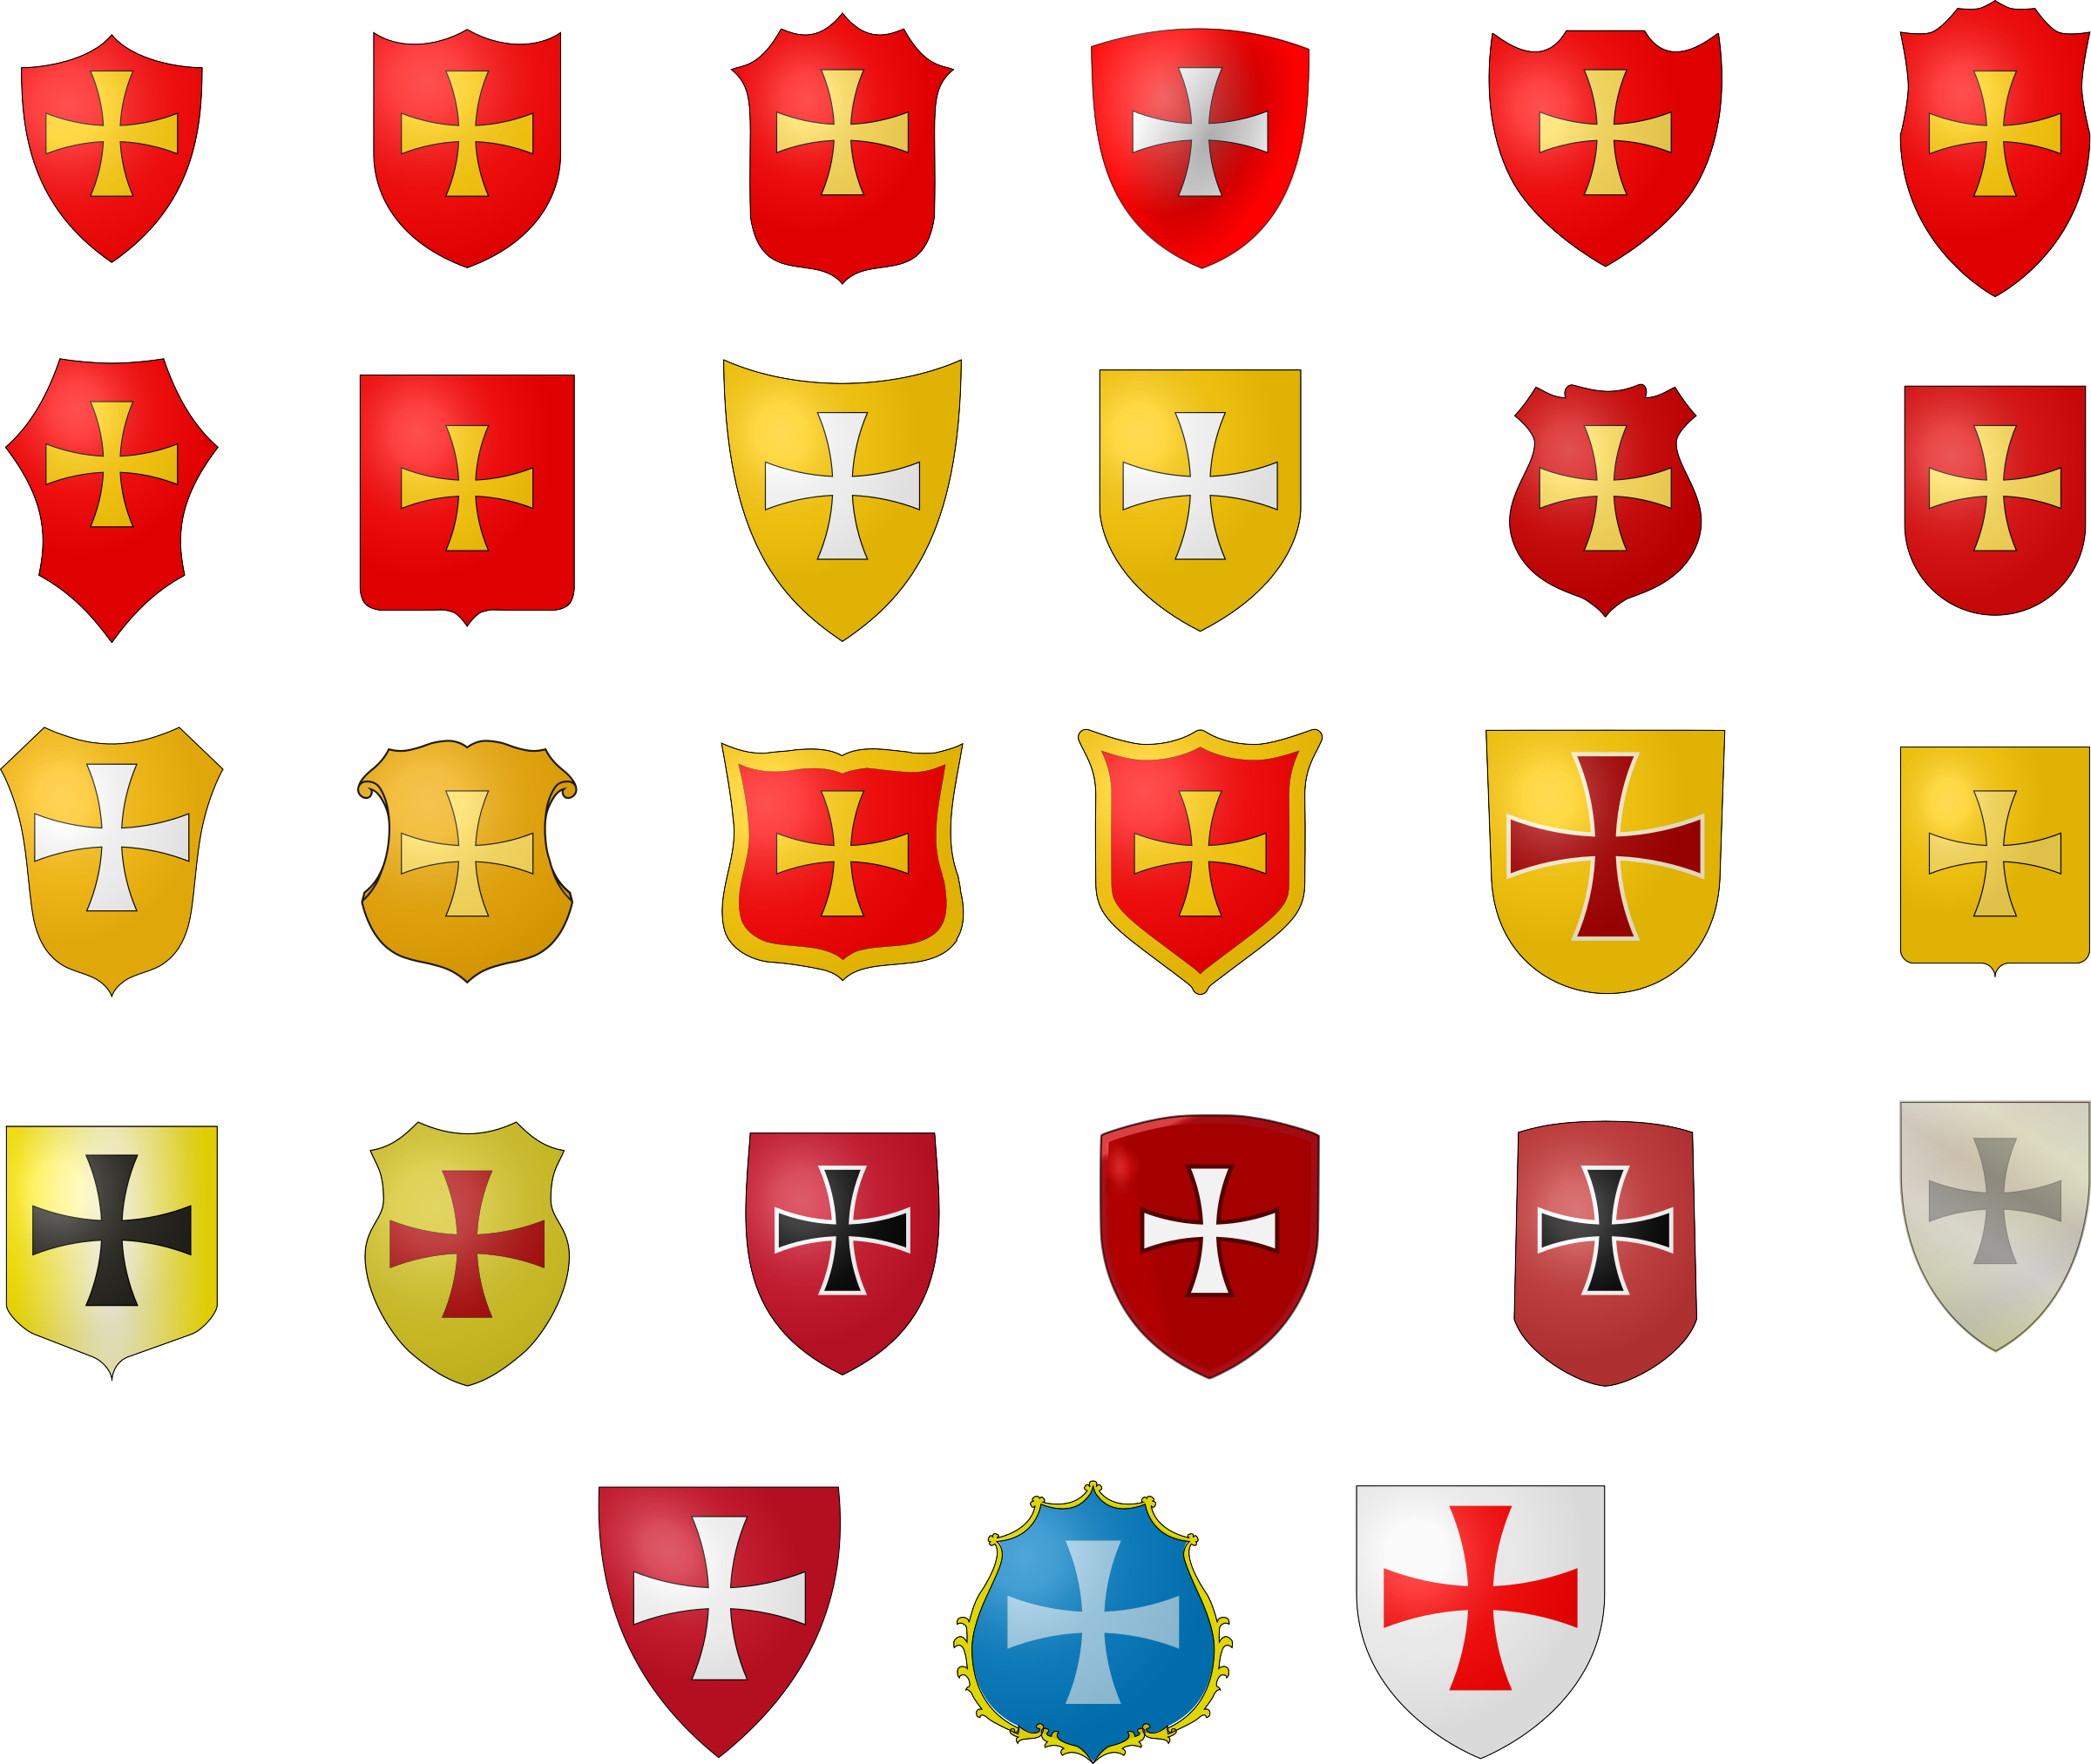 The Coat of Arms by filtre